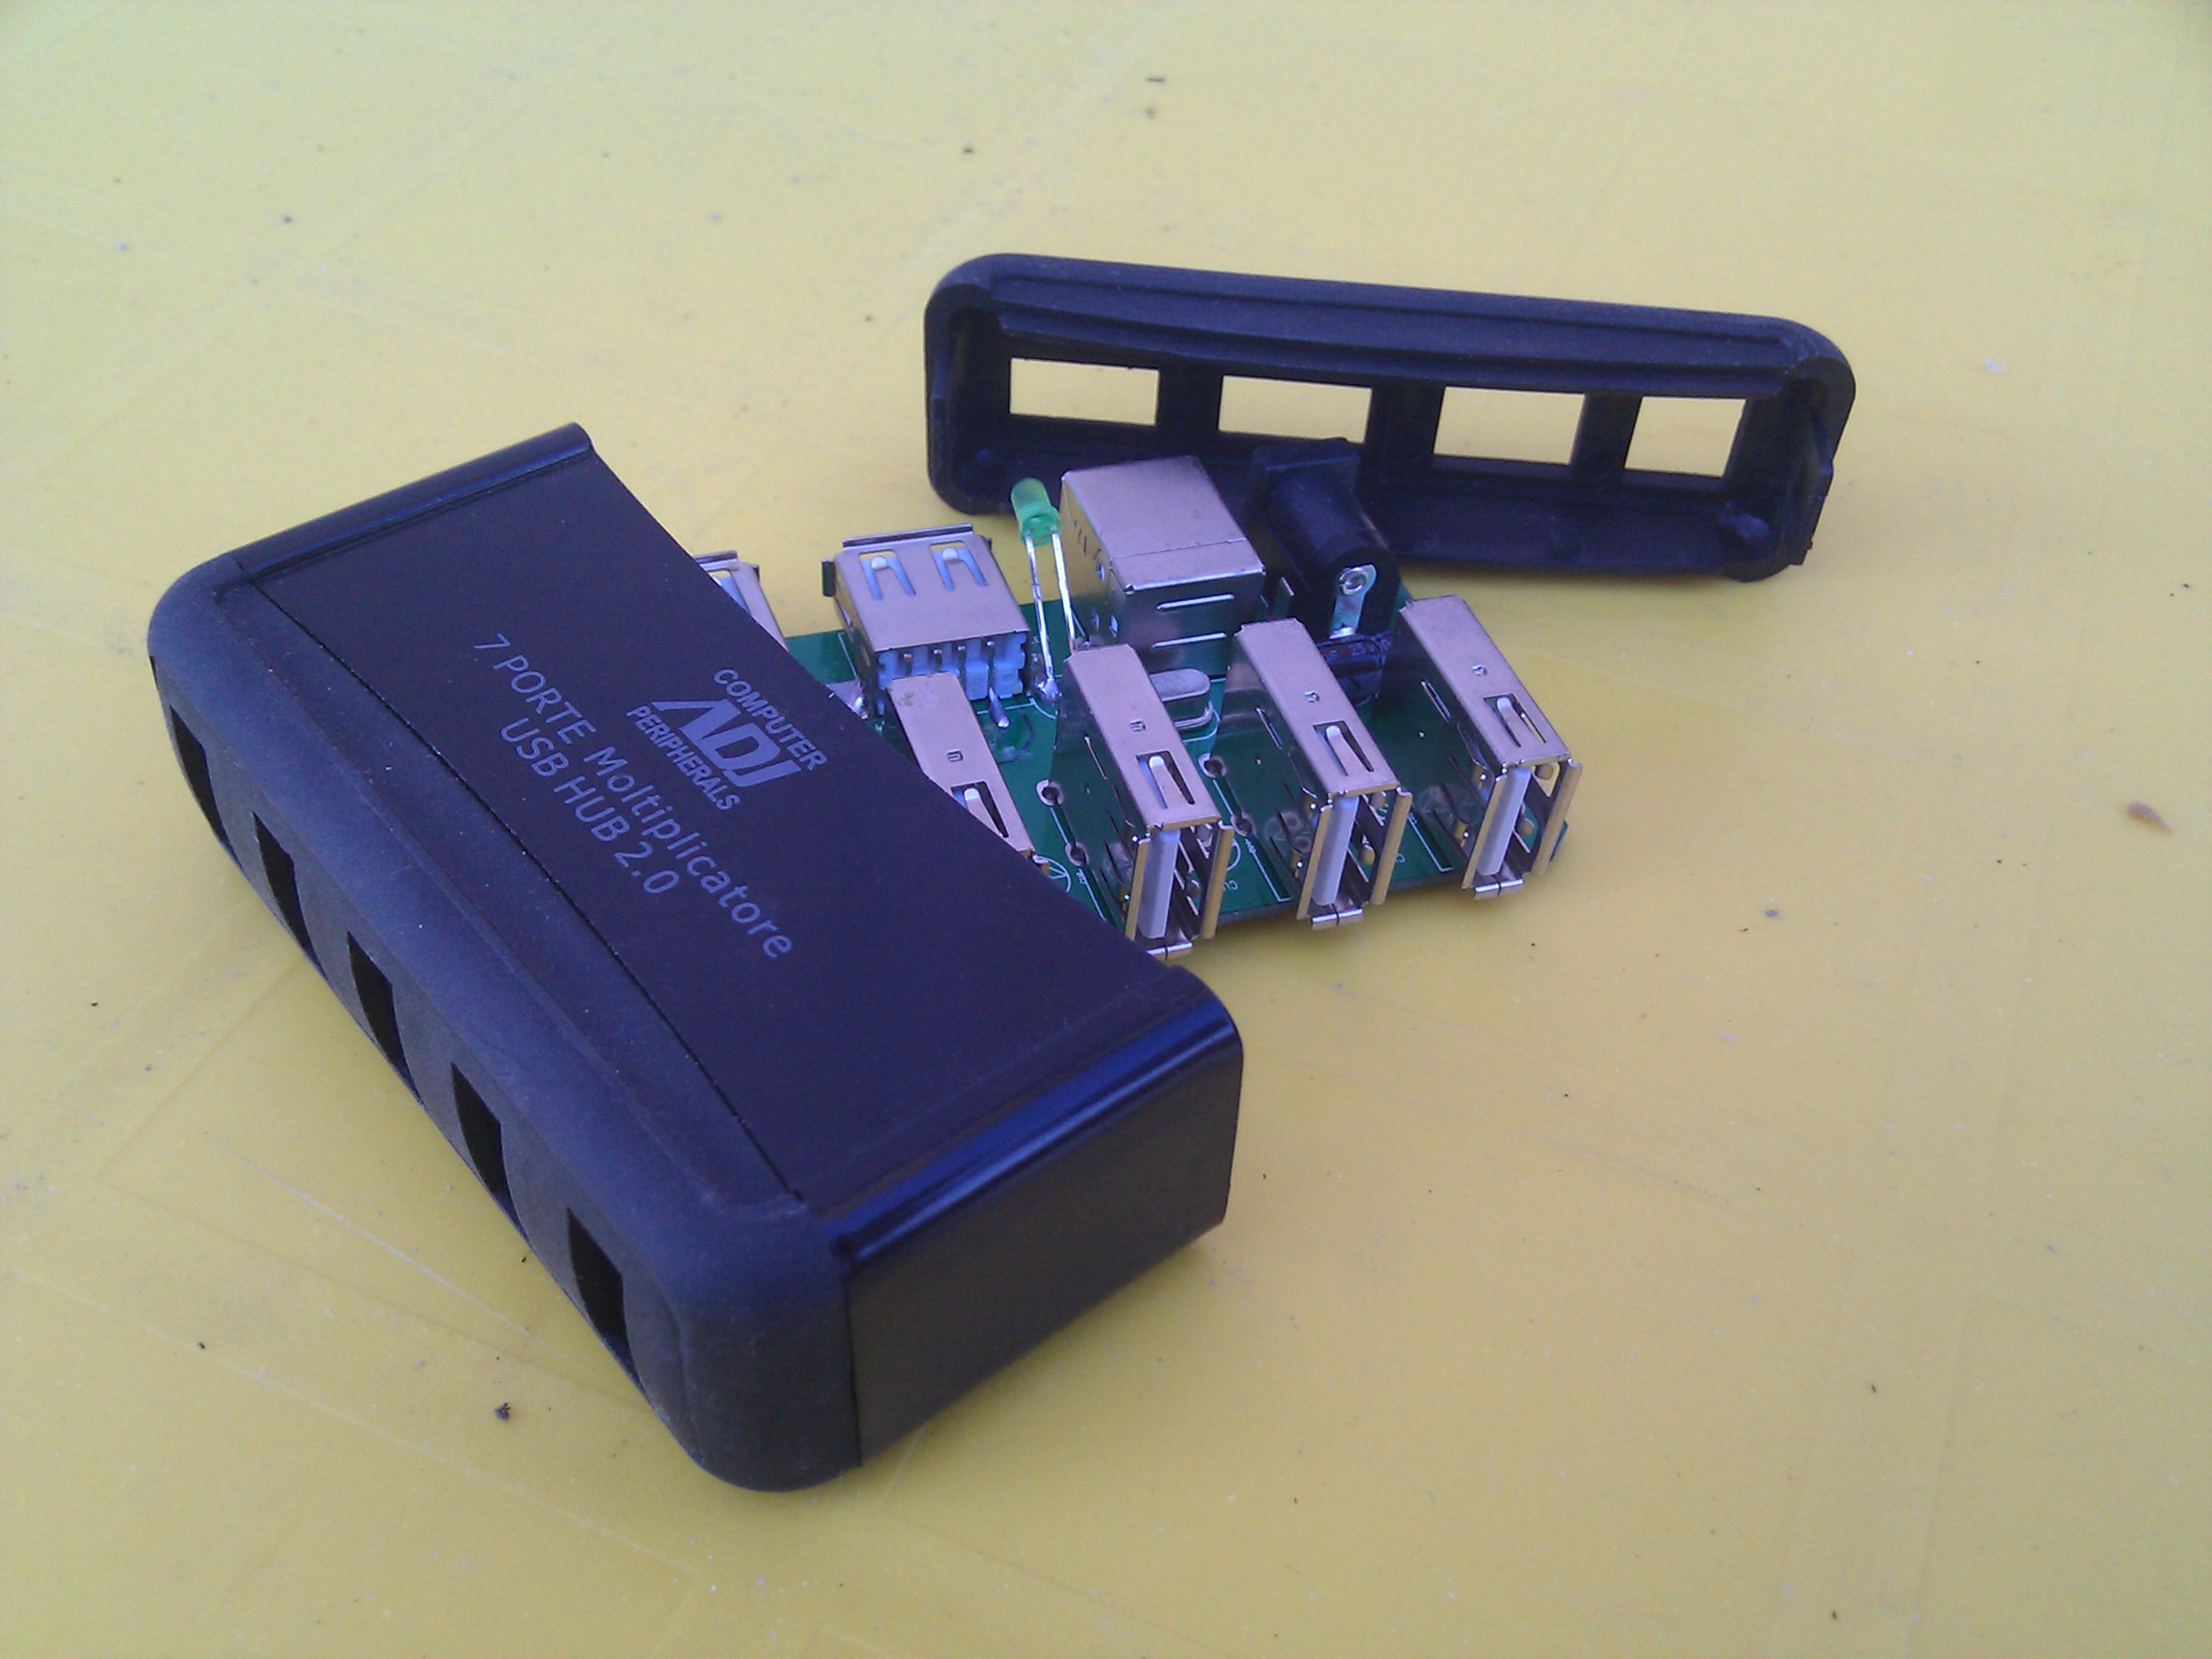 Raspberry case (usb hub)